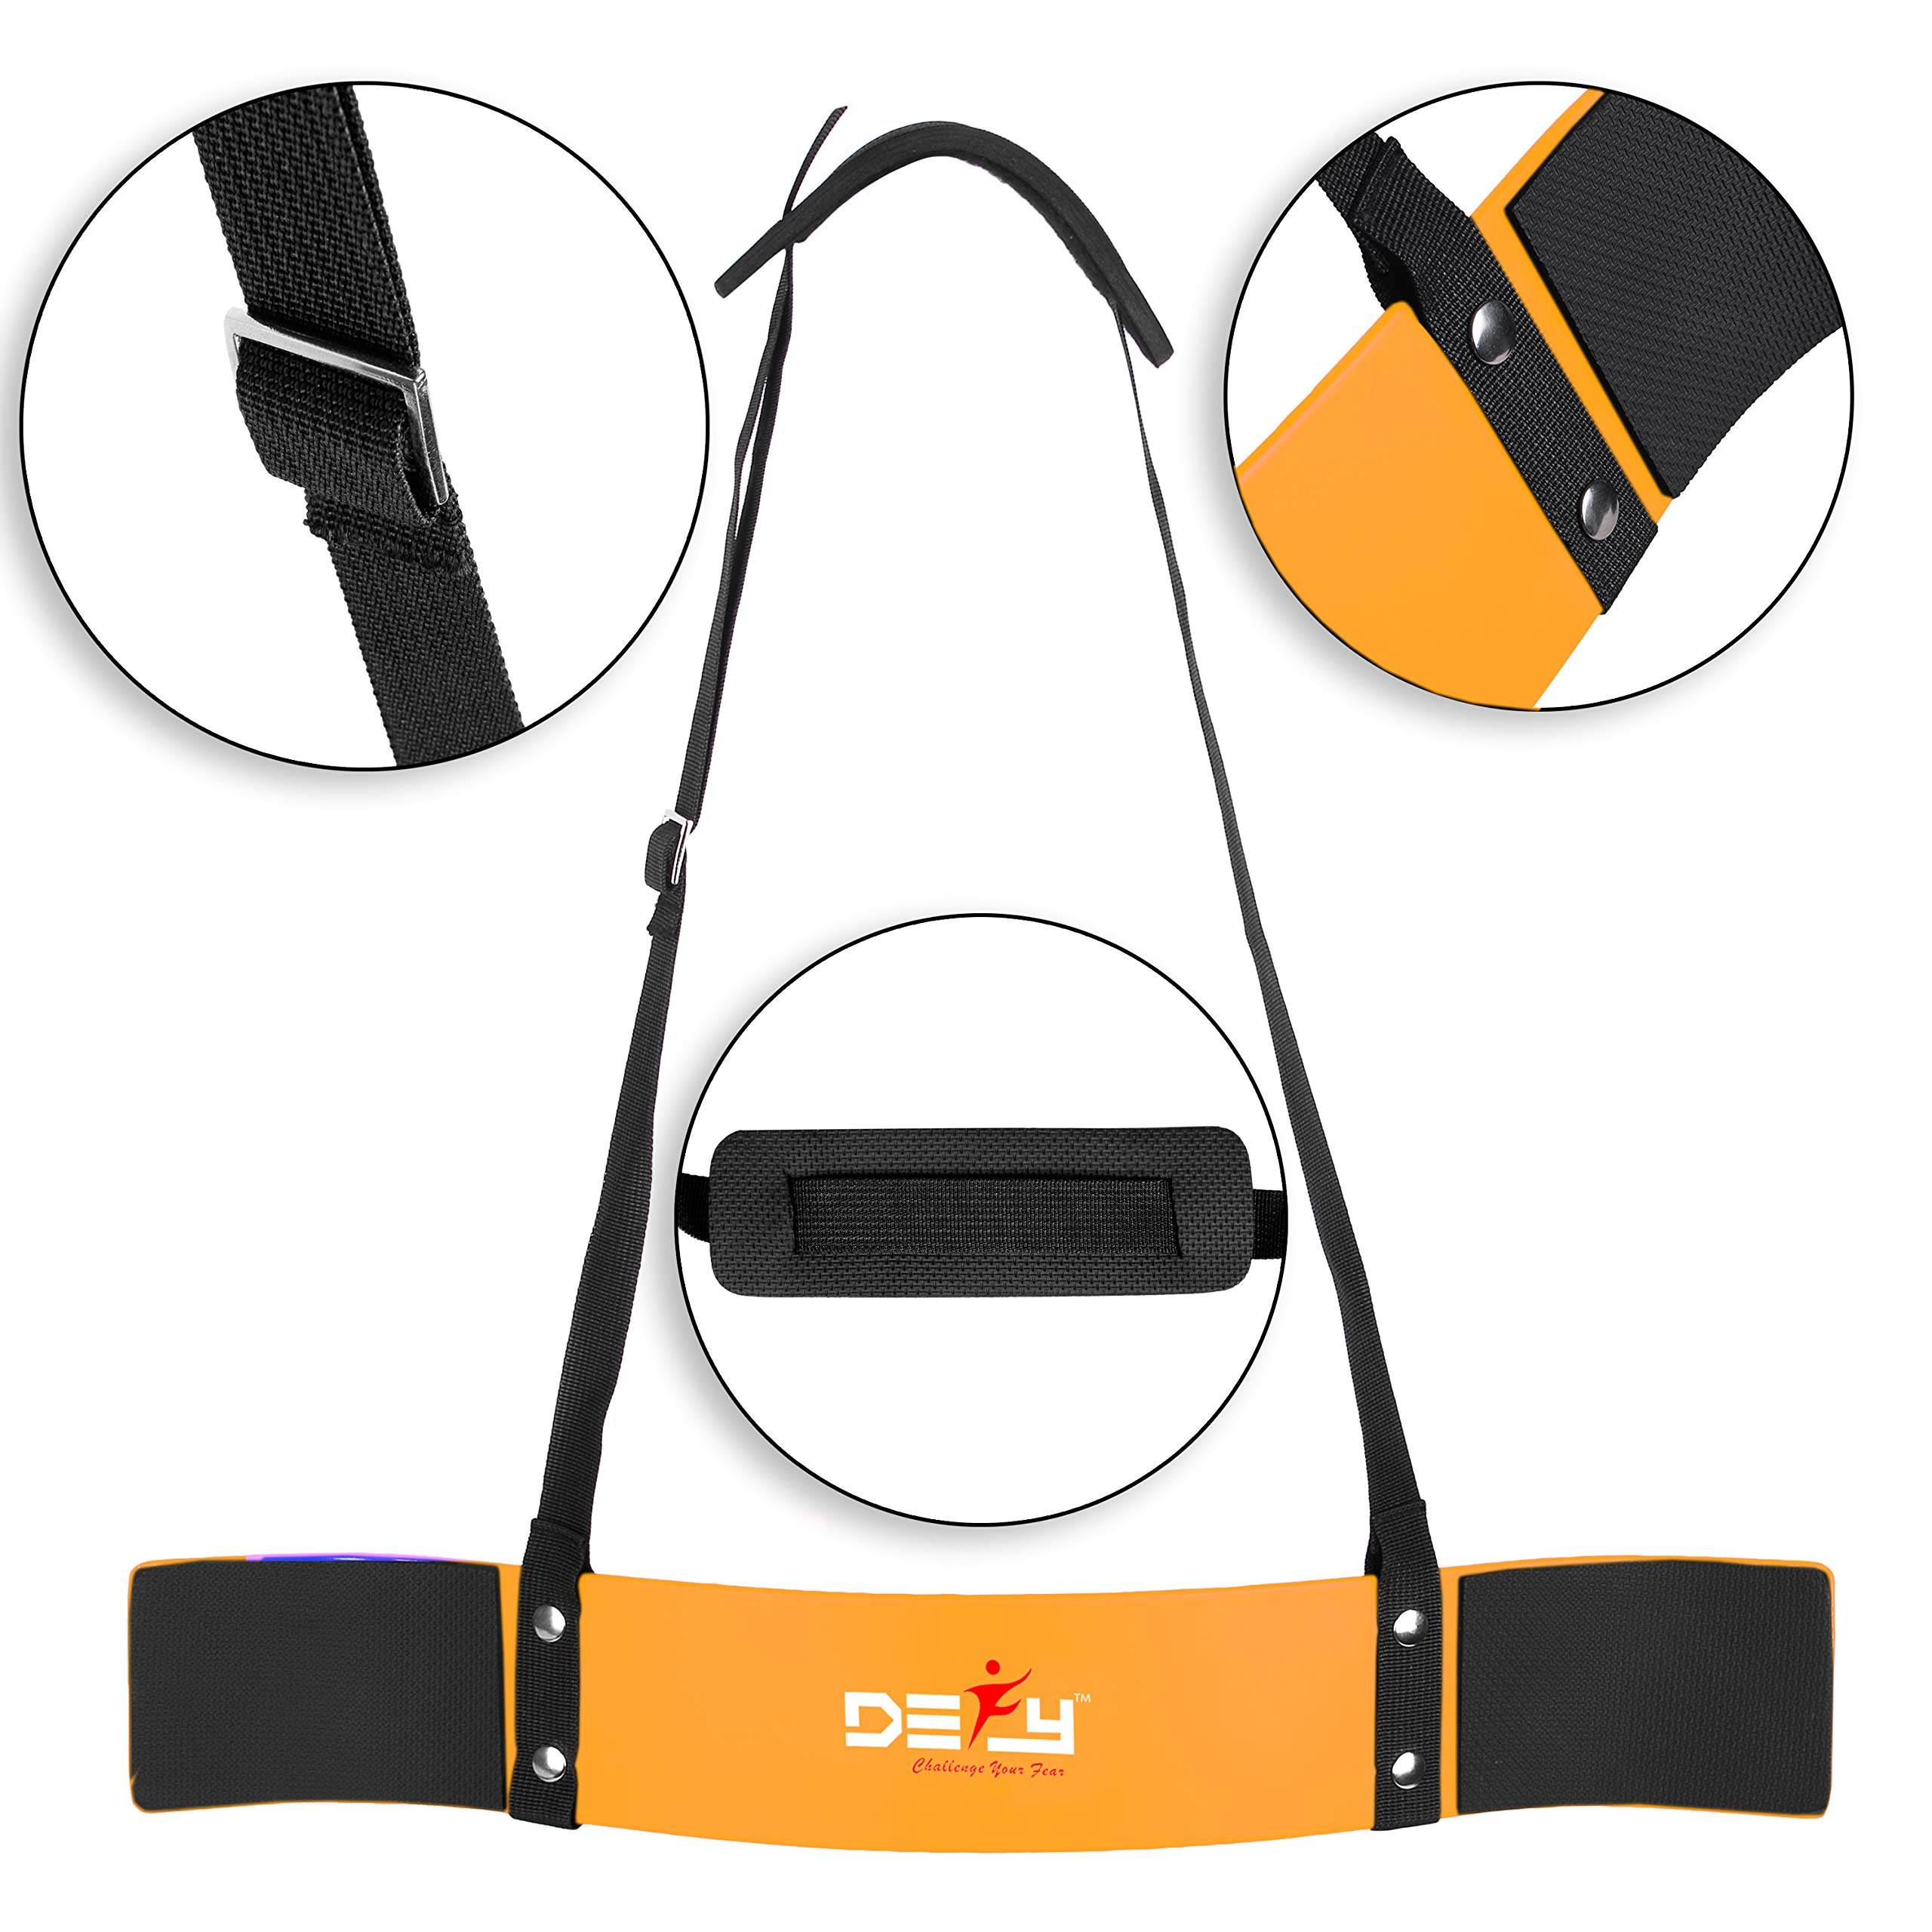 DEFY Heavy Duty Arm Blaster for Biceps and Triceps Workout Ideal Bicep Isolator & Muscle Builder for Bodybuilders and Weight Lifters with Advanced Neoprene Padding for Secure Workout (Gold)